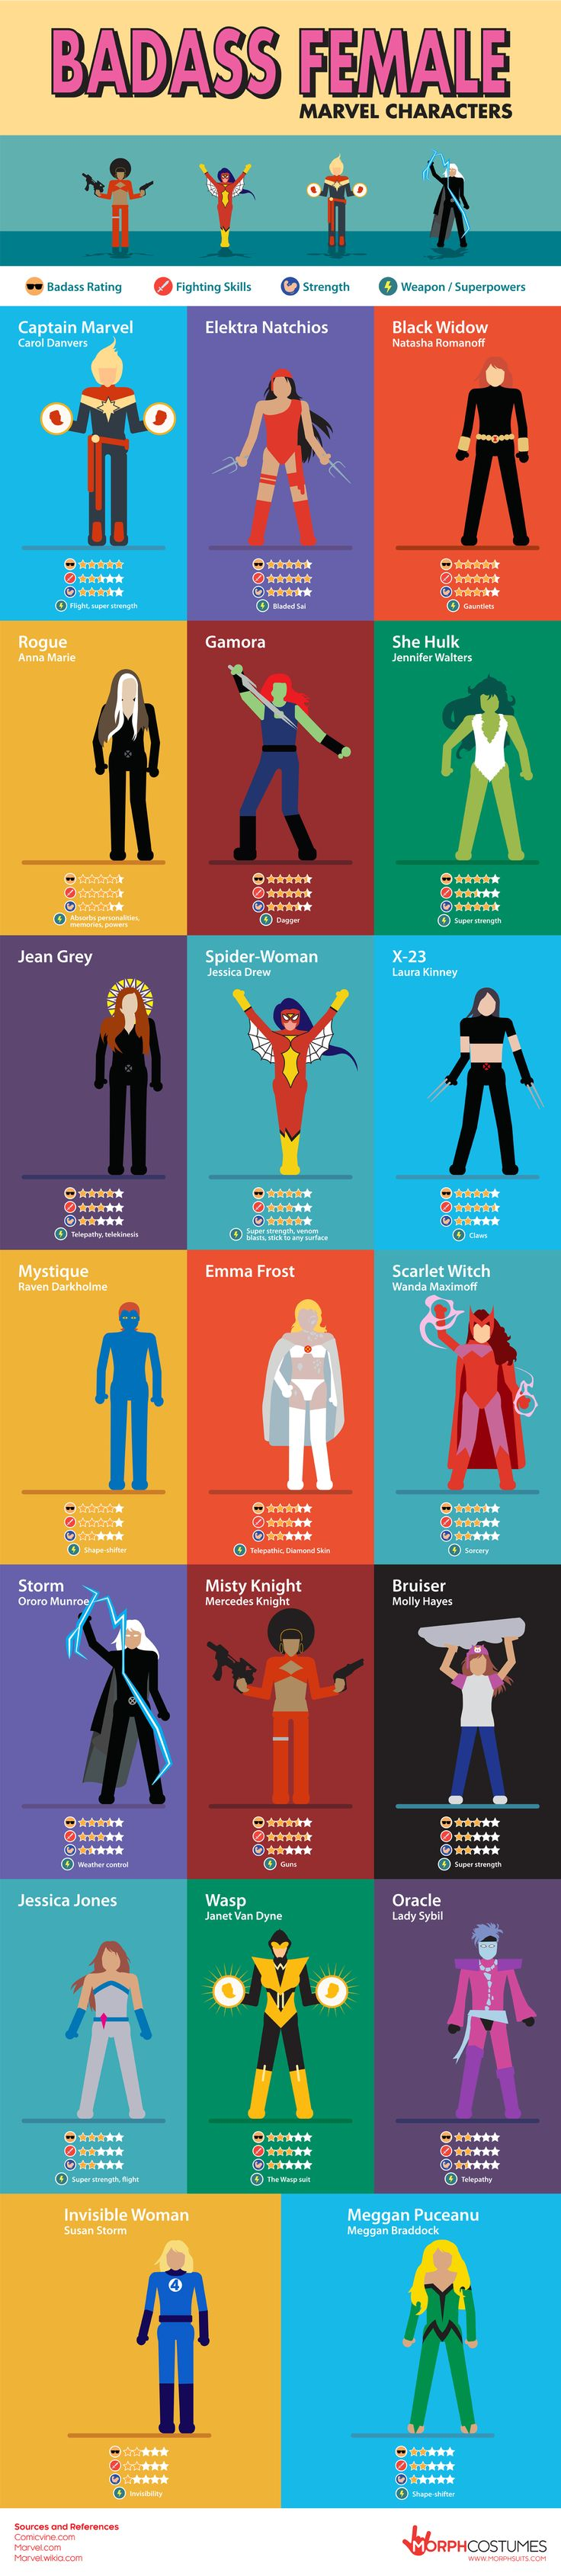 Infographic Looks at the Most Badass Female Marvel Characters | Nerdist